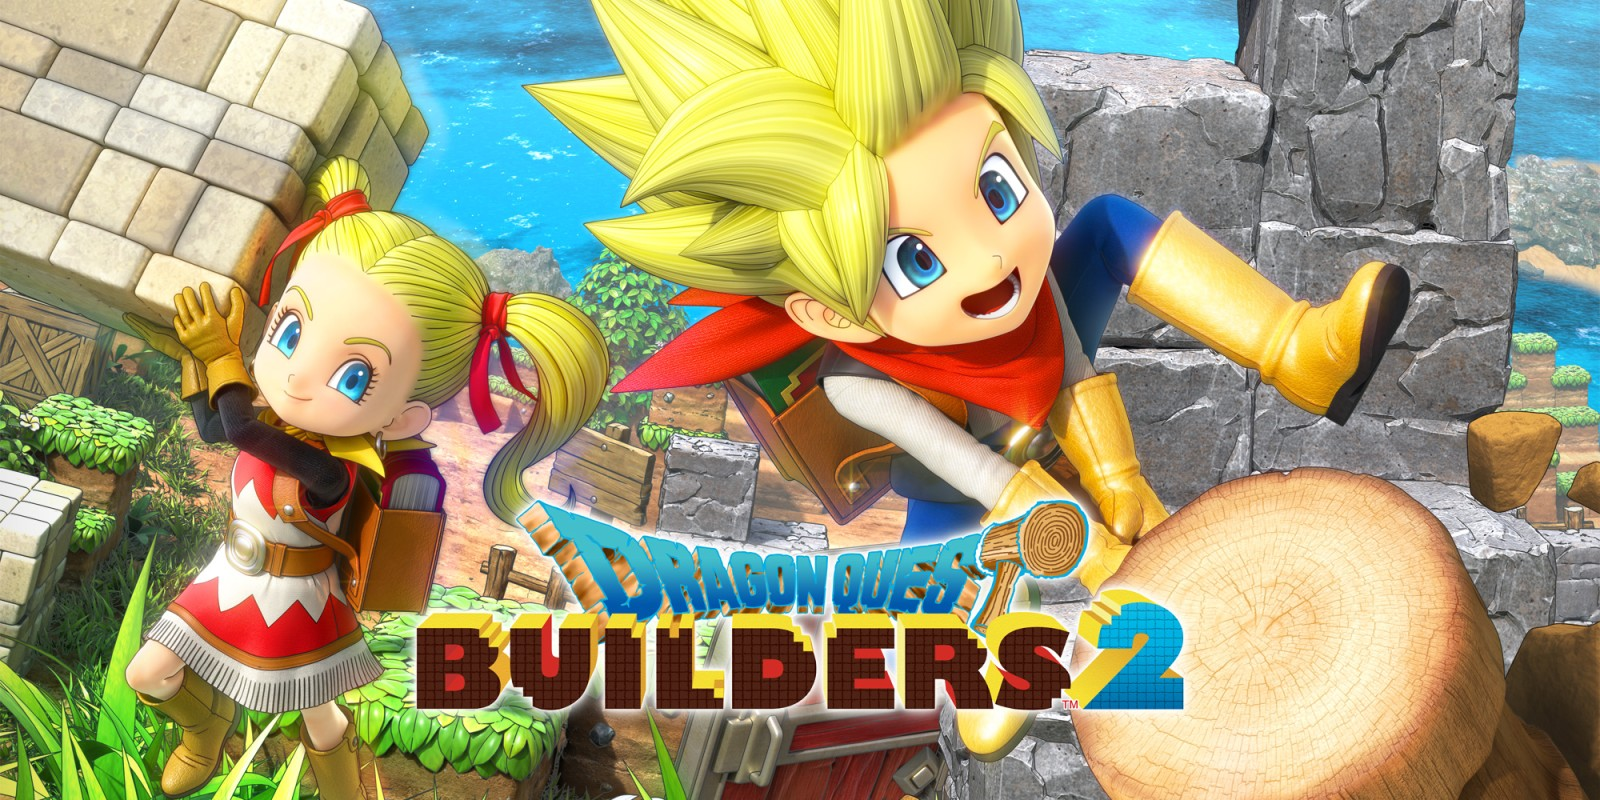 The Final Free Update For Dragon Quest Builders 2 Has Will Be